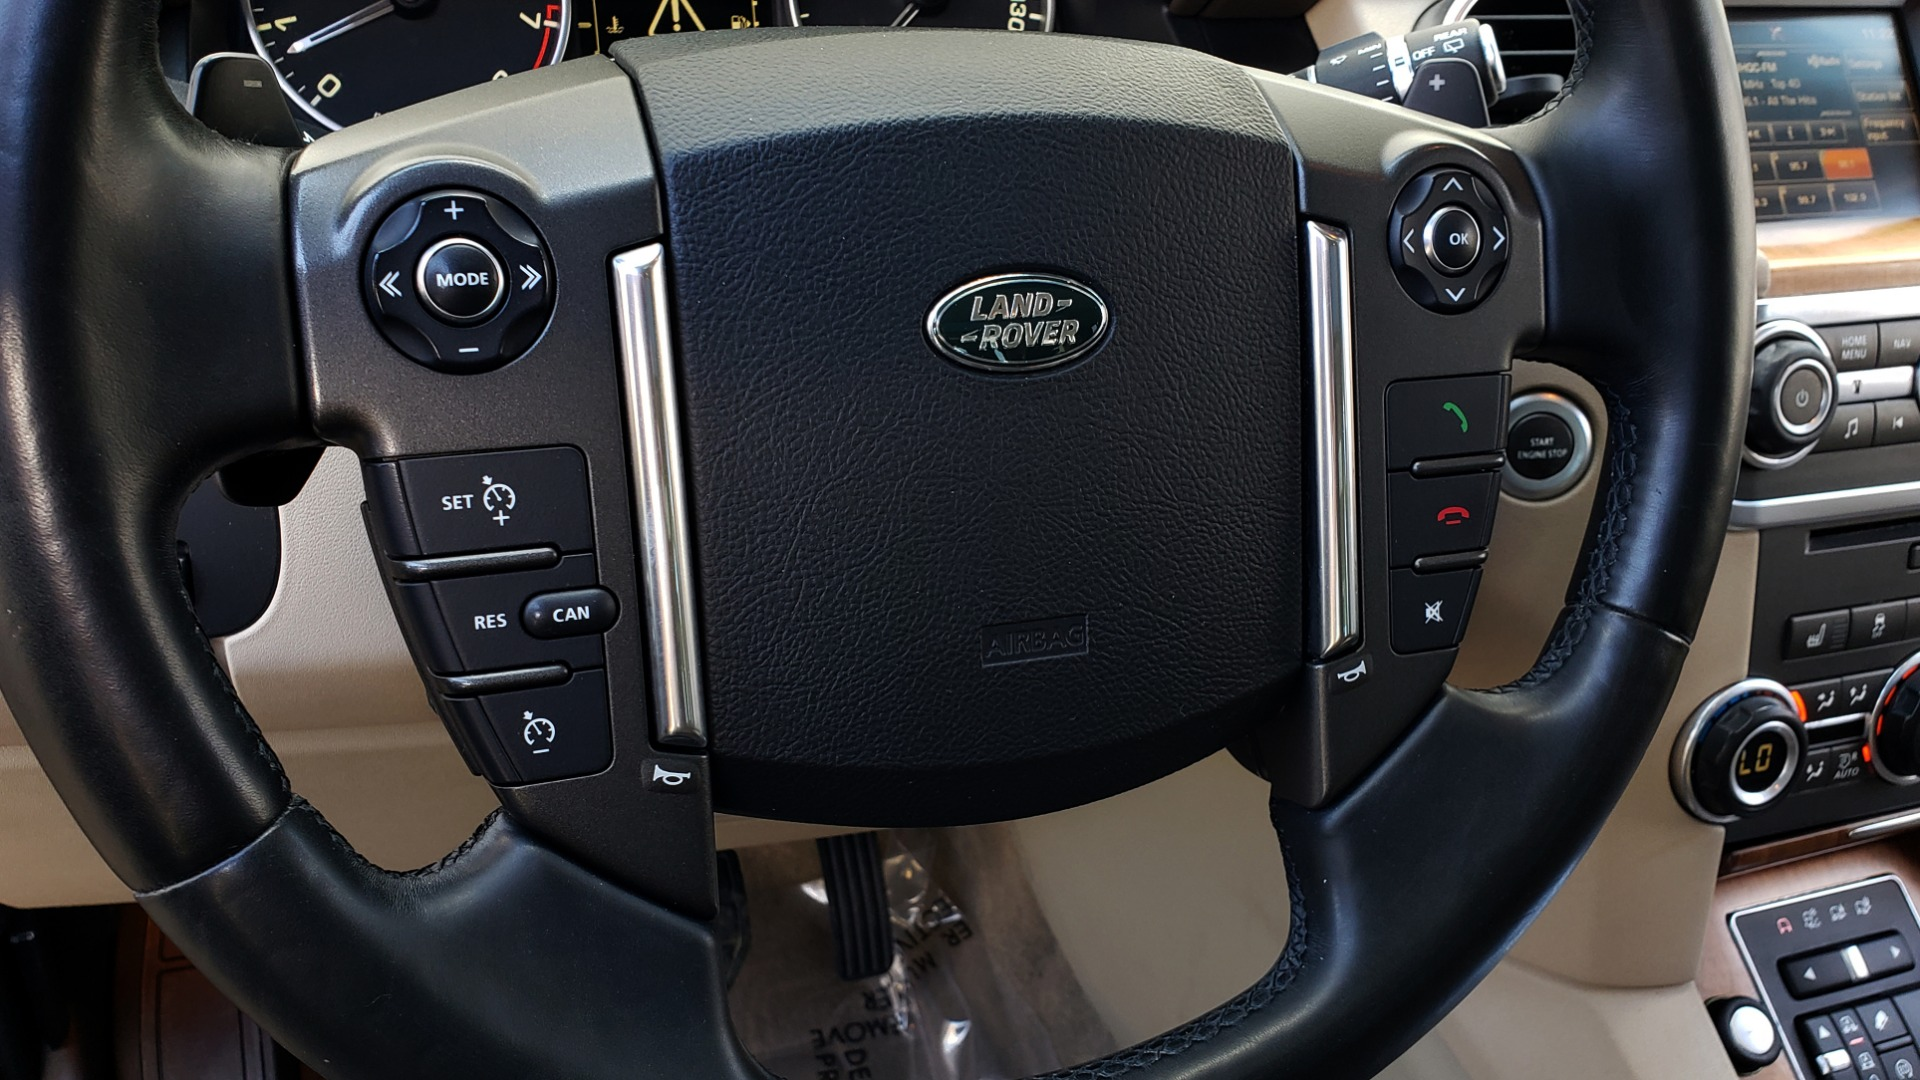 Used 2016 Land Rover LR4 HSE LUX / NAV / SUNROOF / MERIDIAN / REARVIEW / 3-ROW for sale Sold at Formula Imports in Charlotte NC 28227 51